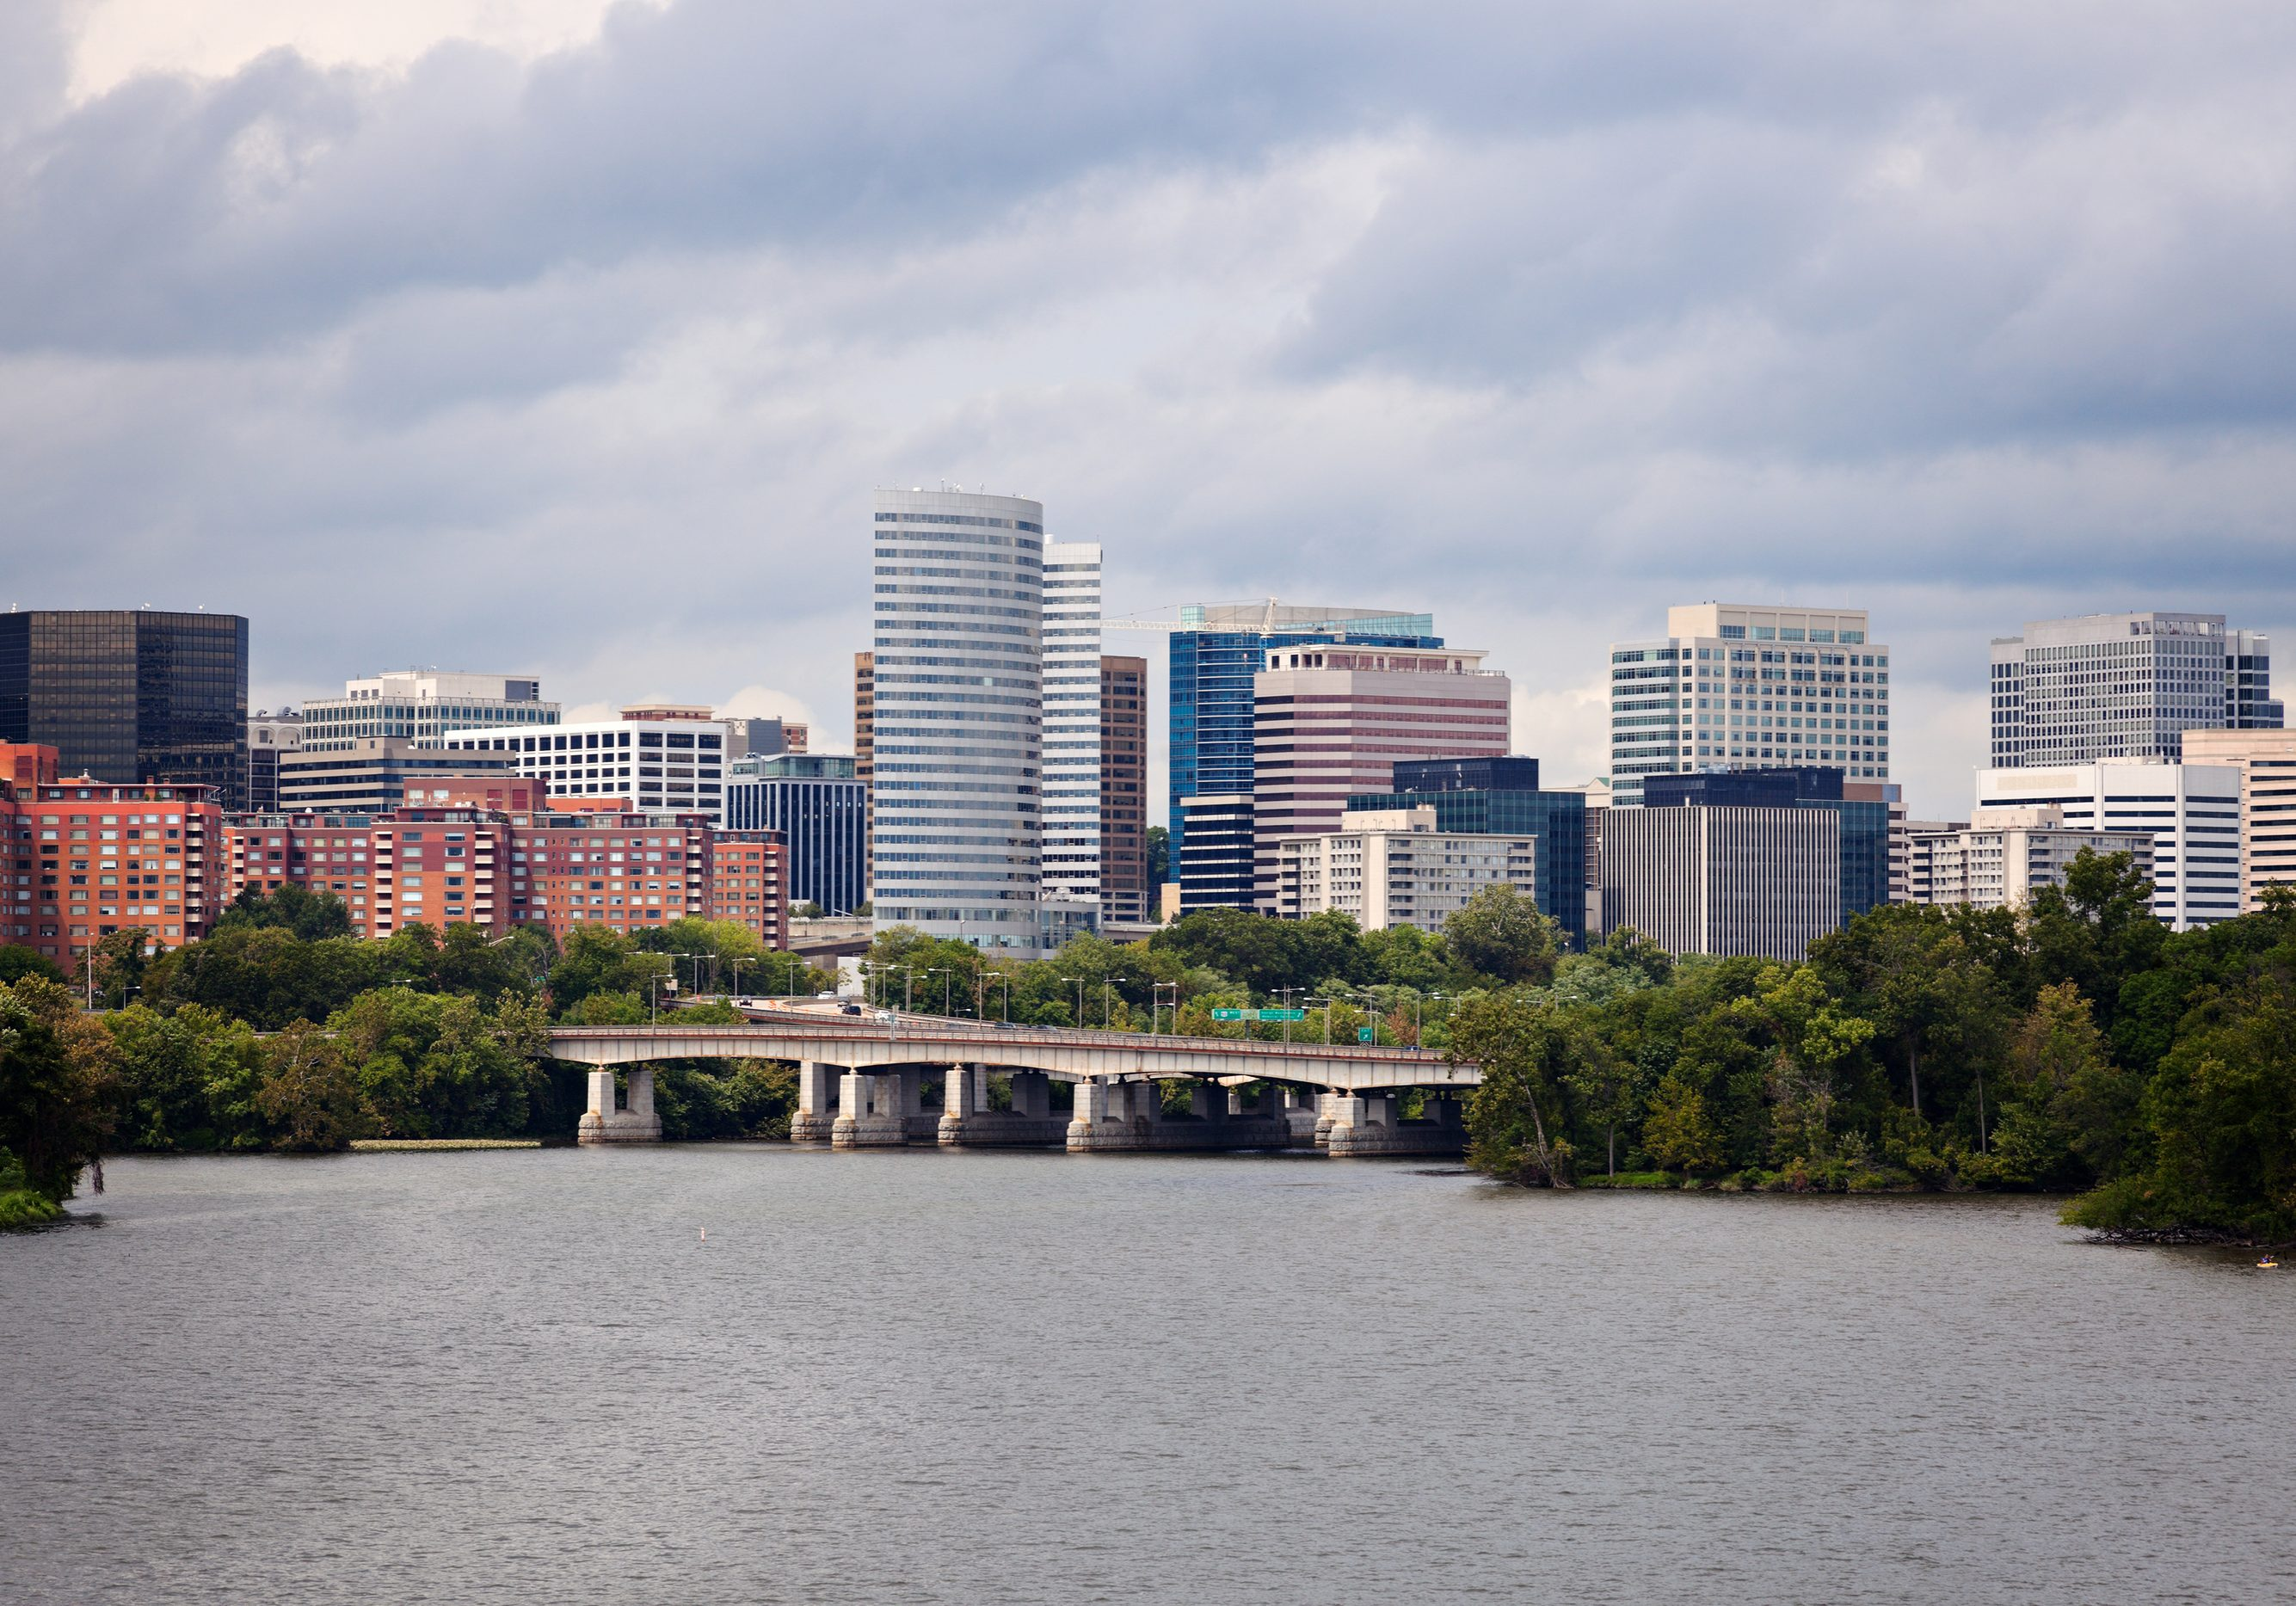 Buy in Arlington, a Great Walkable City in Northern Virginia - Eastern Suburbs